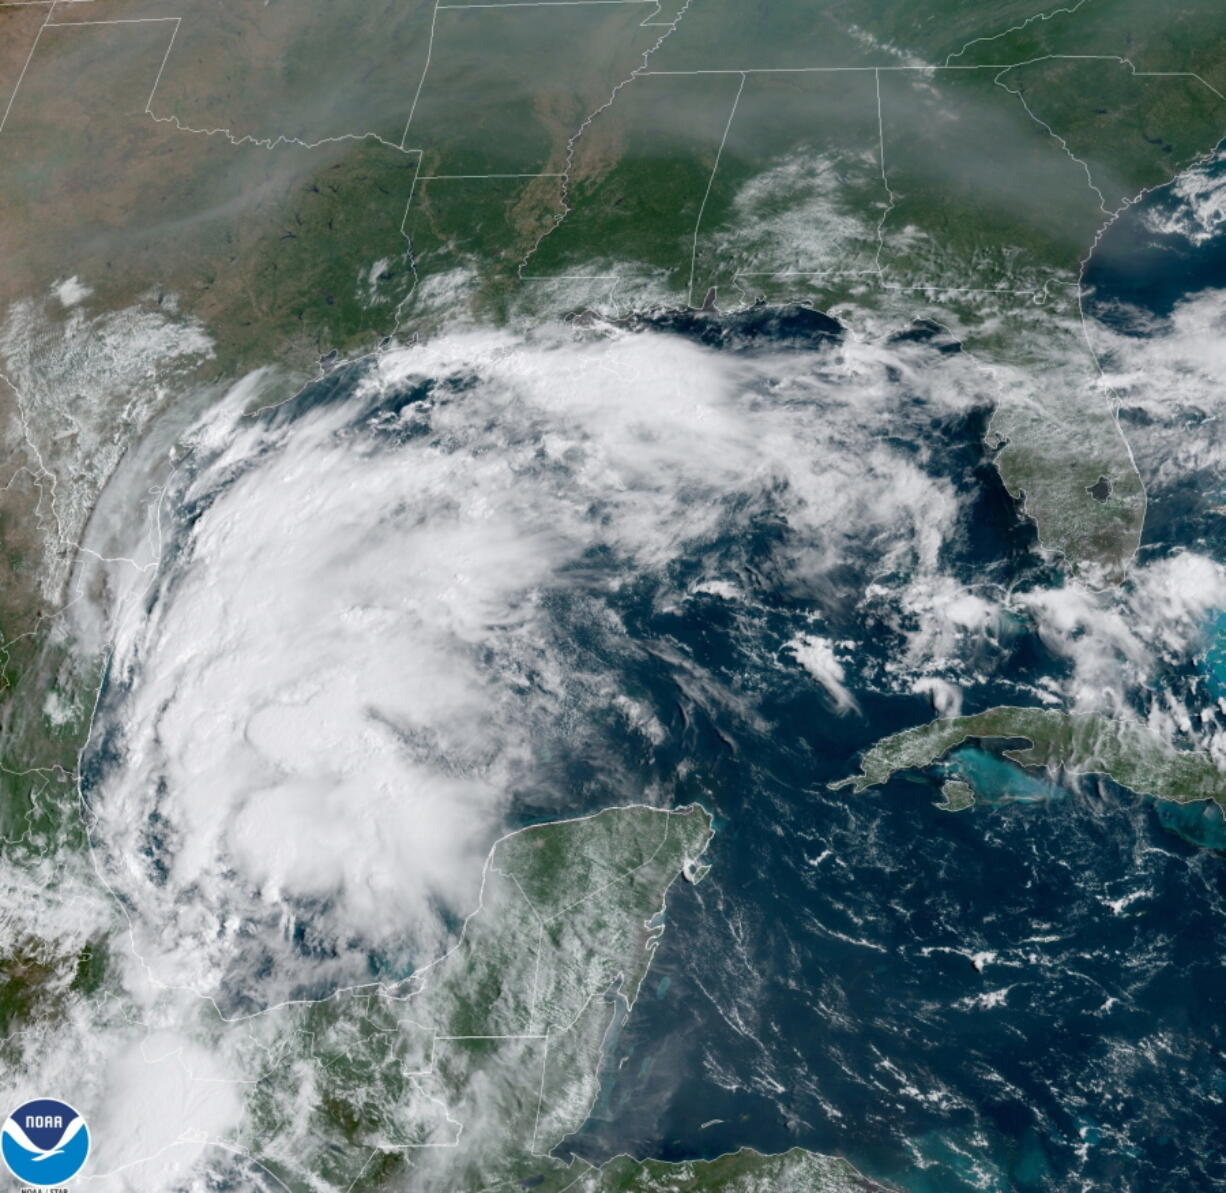 This satellite image provided by NOAA shows Tropical Storm Nicholas in the Gulf of Mexico on Sunday, Sept. 12, 2021. Tropical storm warnings have been issued for coastal Texas and the northeast coast of Mexico. Nicholas is expected to produce storm total rainfall of 5 to 10 inches, with isolated maximum amounts of 15 inches, across portions of coastal Texas into southwest Louisiana Sunday, Sept. 12 through midweek.